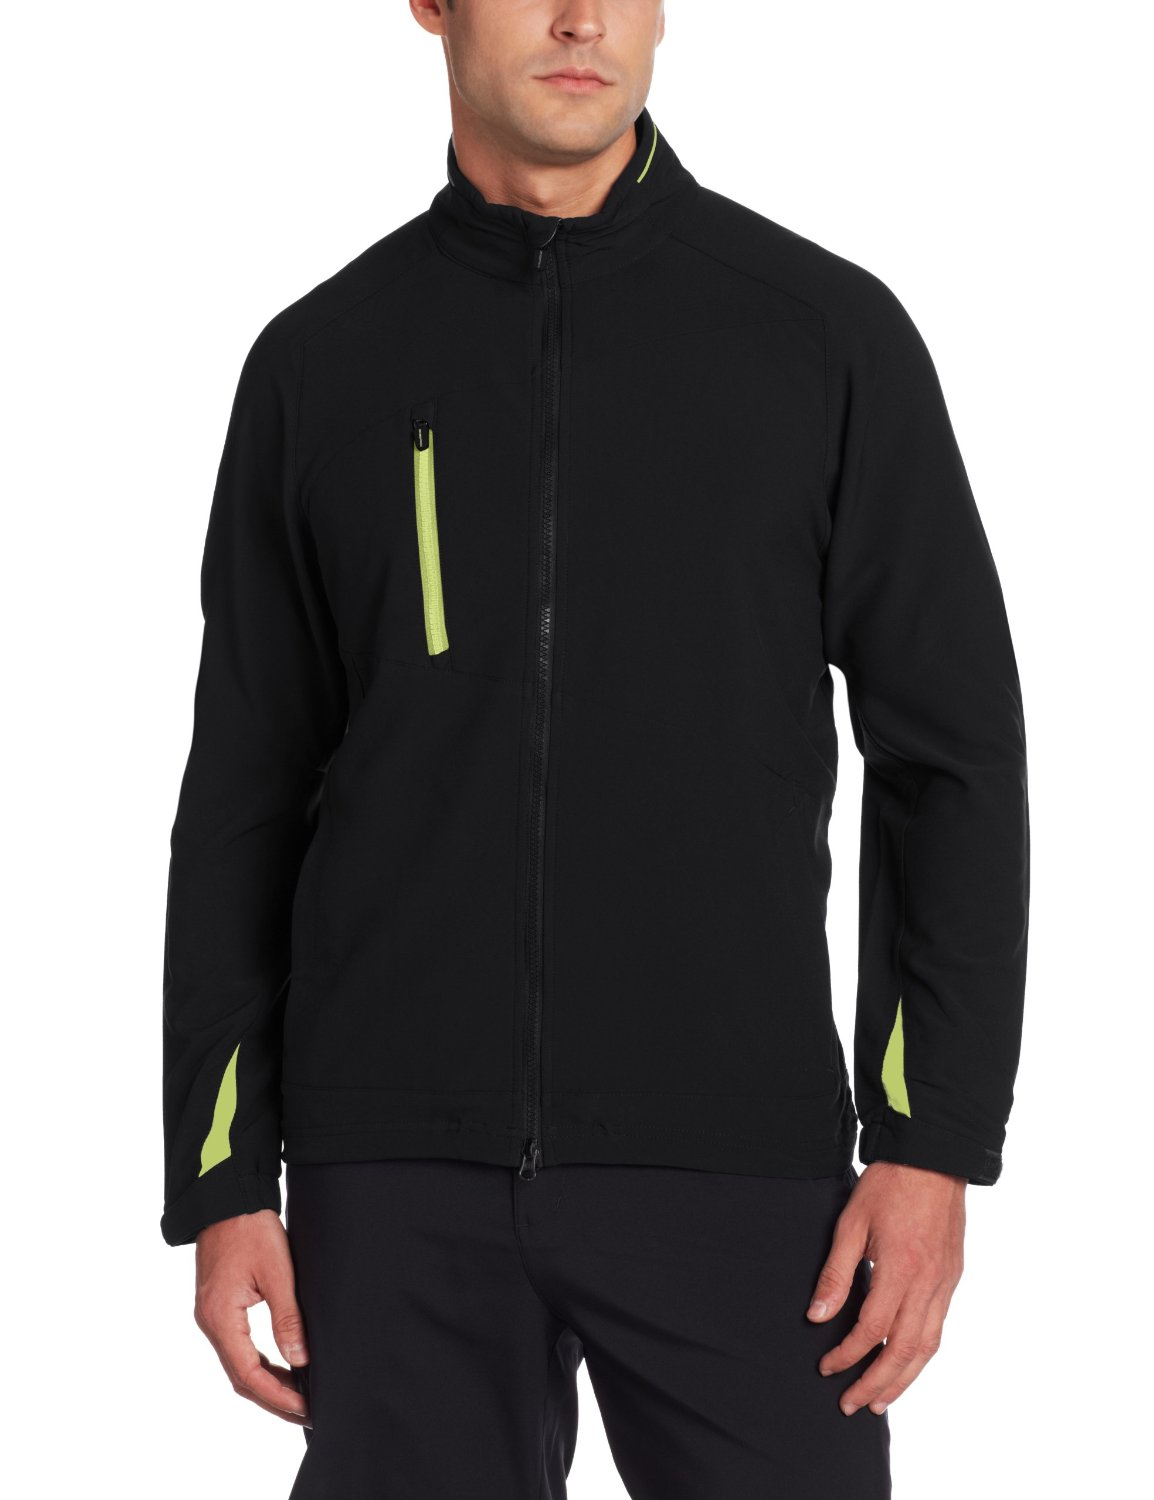 Mens Zero Restriction Zip Front Golf Jackets